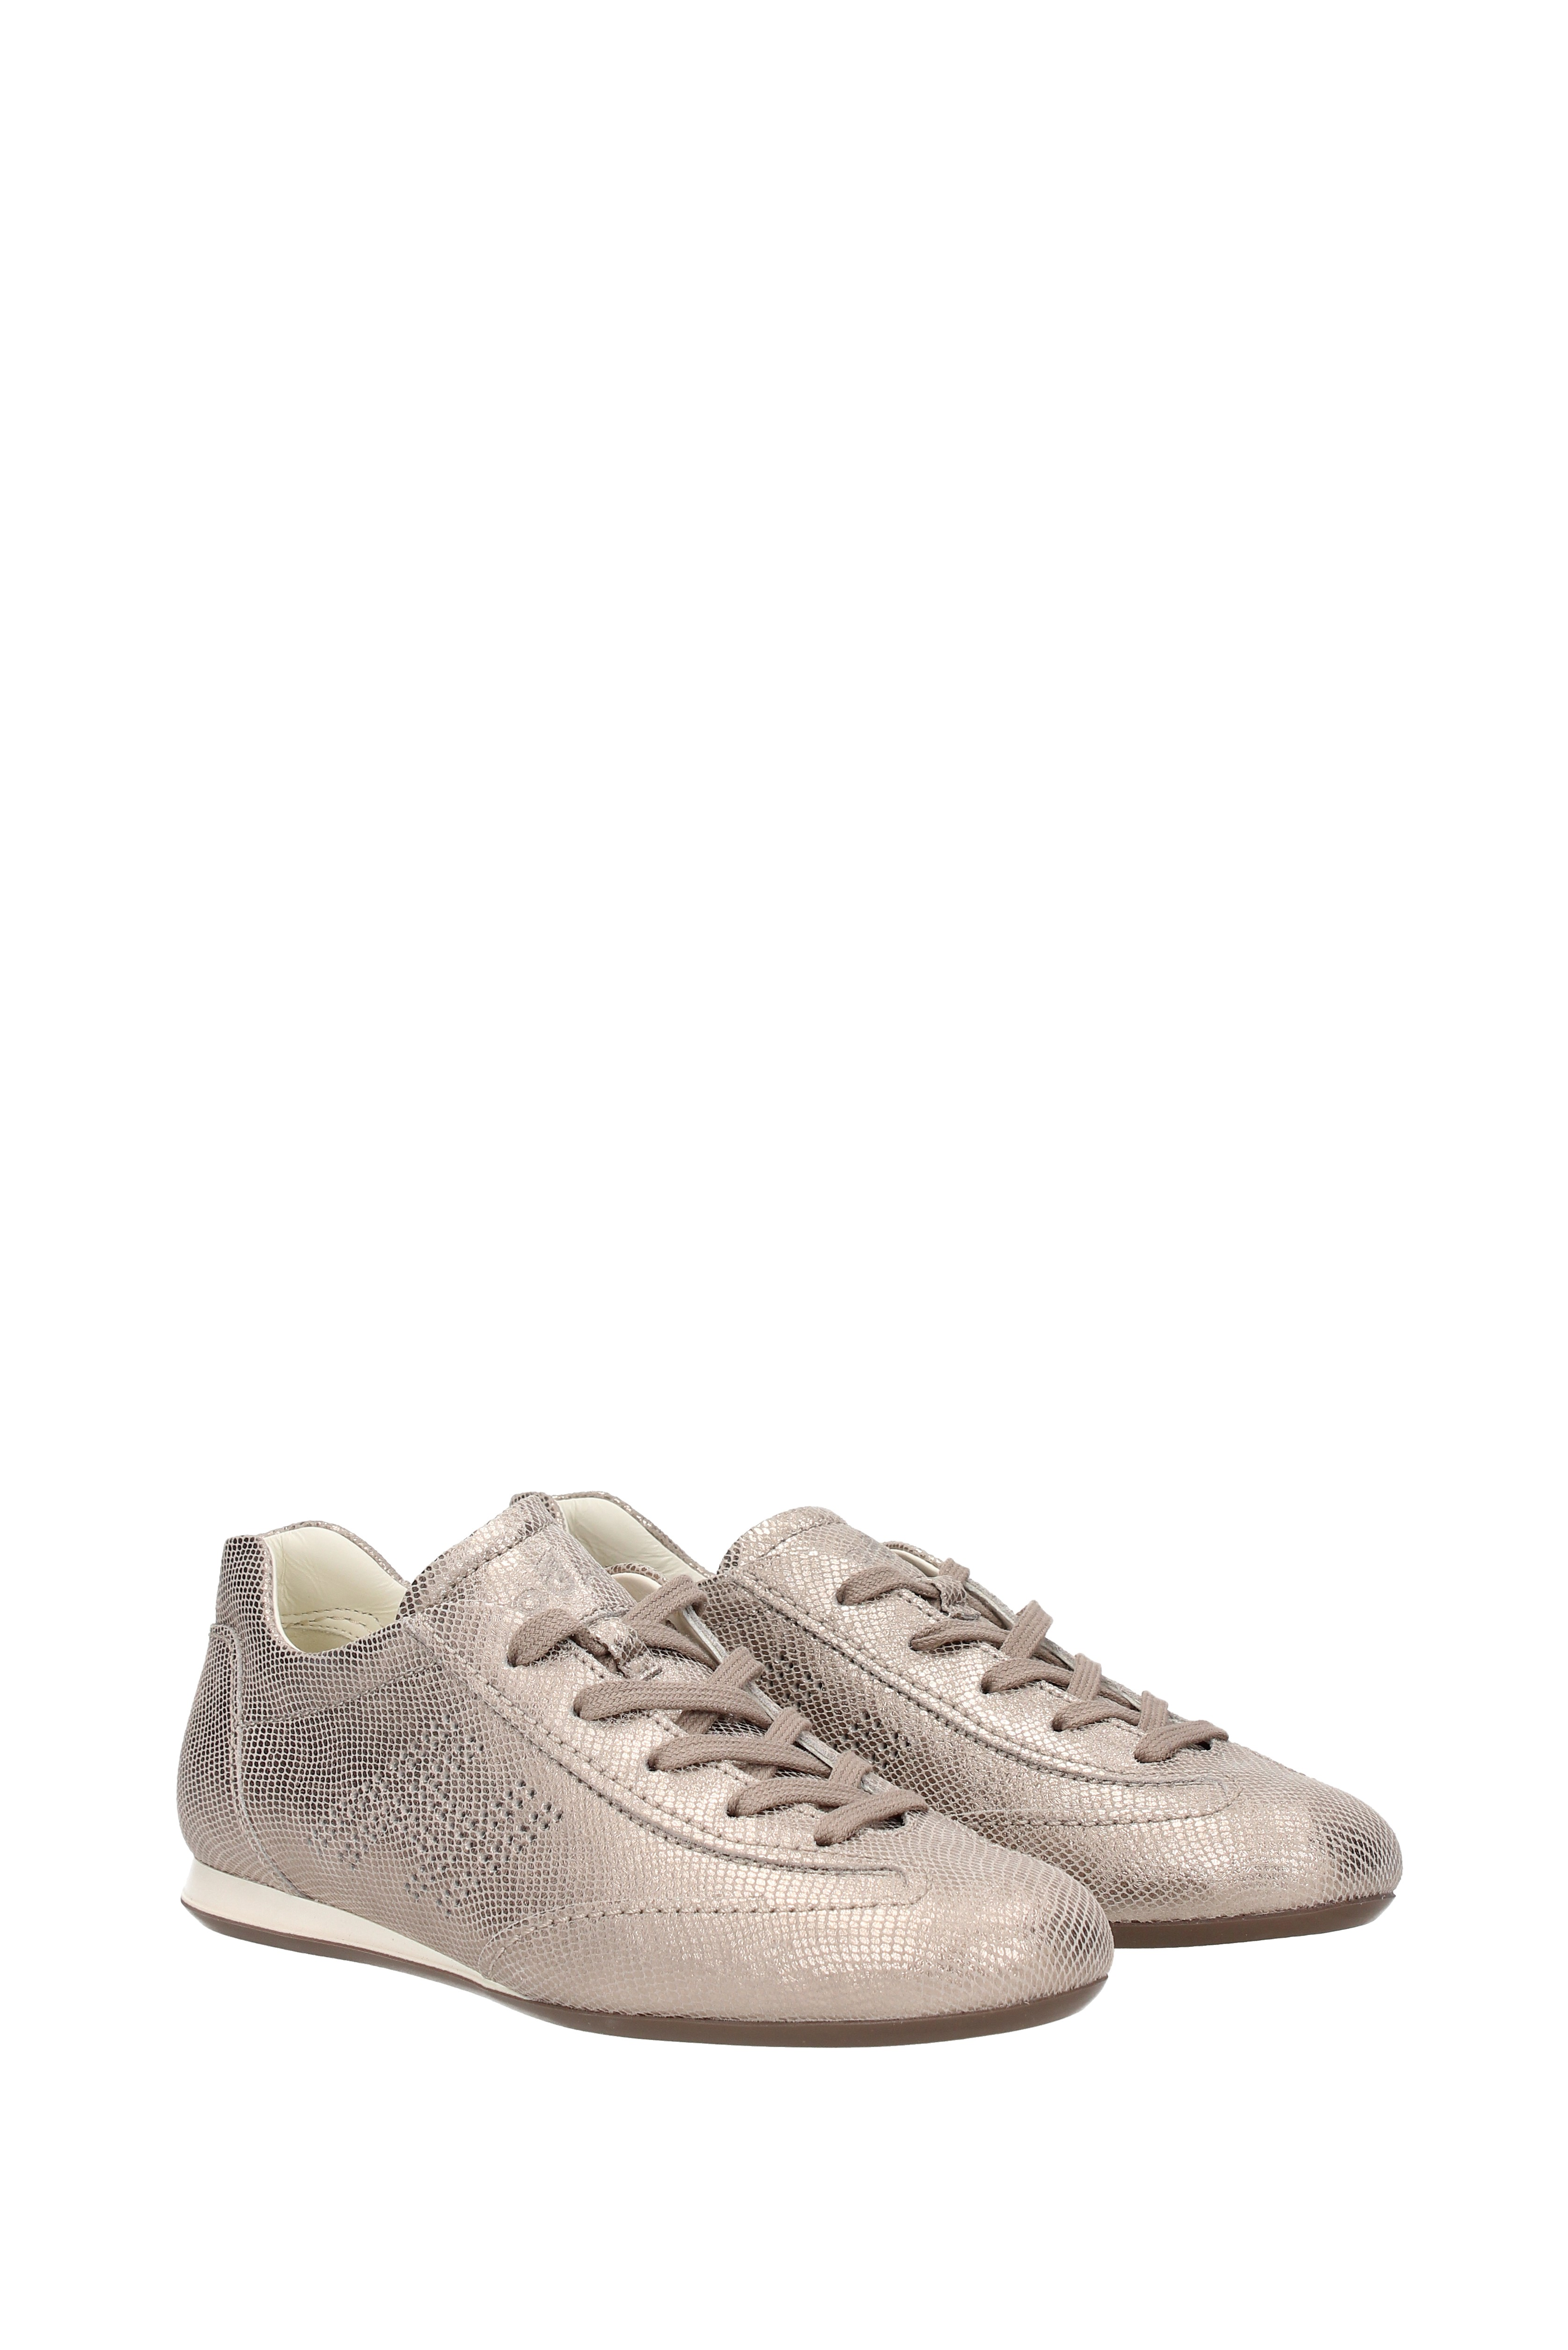 Sneakers Hogan OLYMPIA Donna Pelle HXW052000417HV